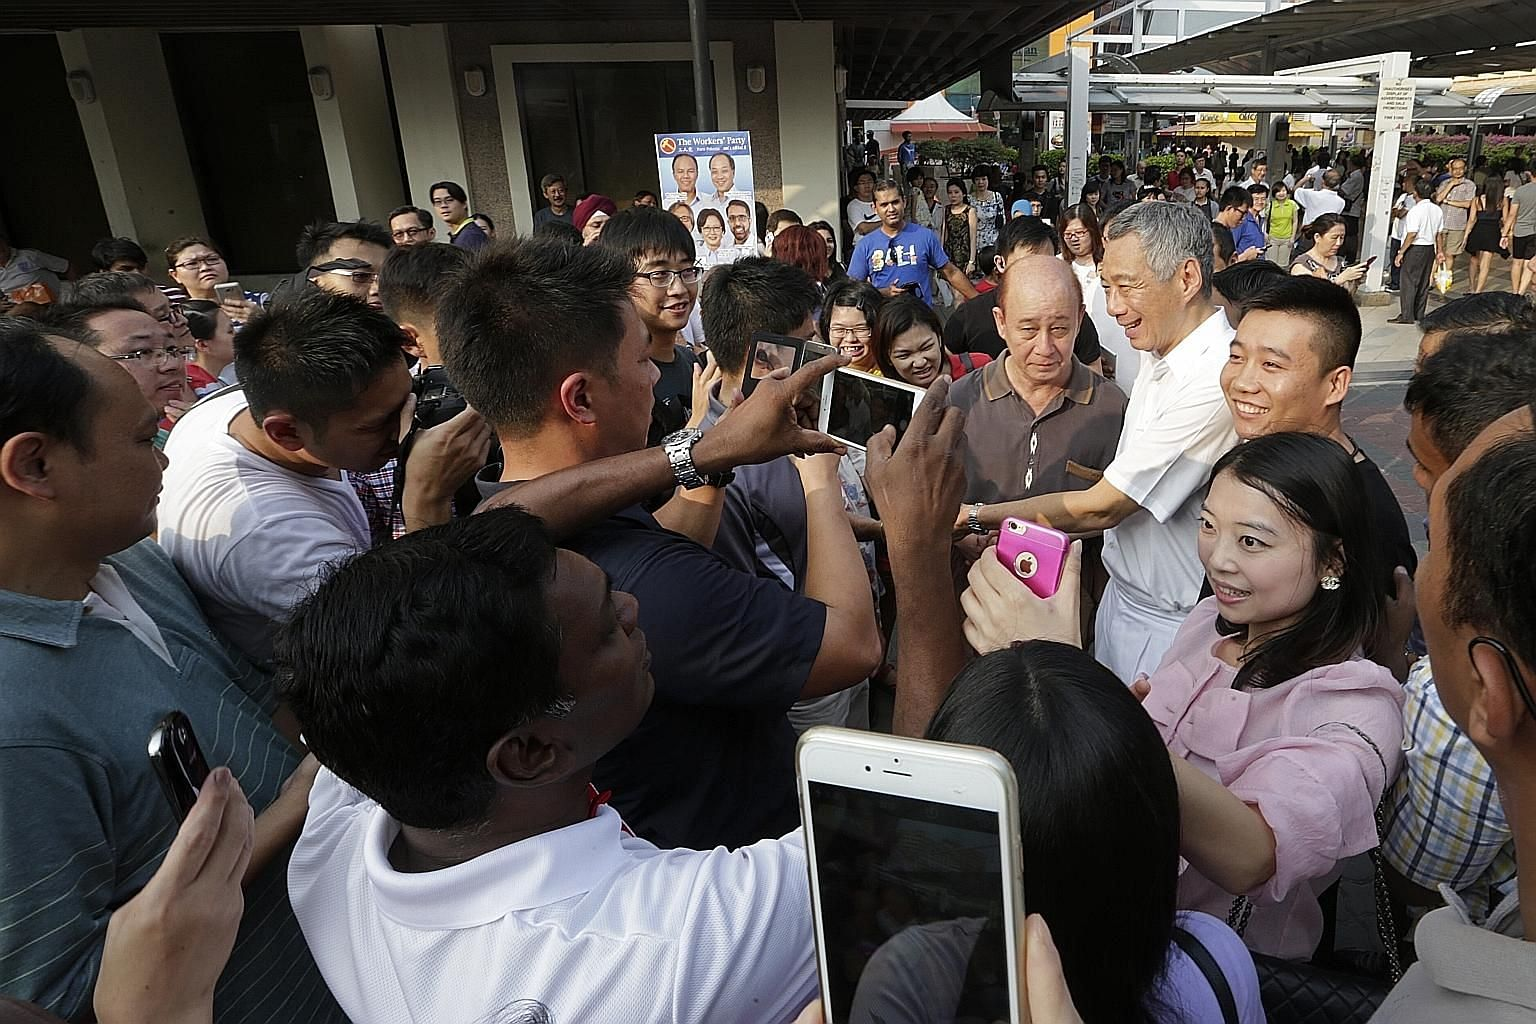 Prime Minister Lee Hsien Loong surrounded by people wanting to have photographs taken with him outside Hougang MRT station during a walkabout with the PAP candidates for Aljunied GRC yesterday.